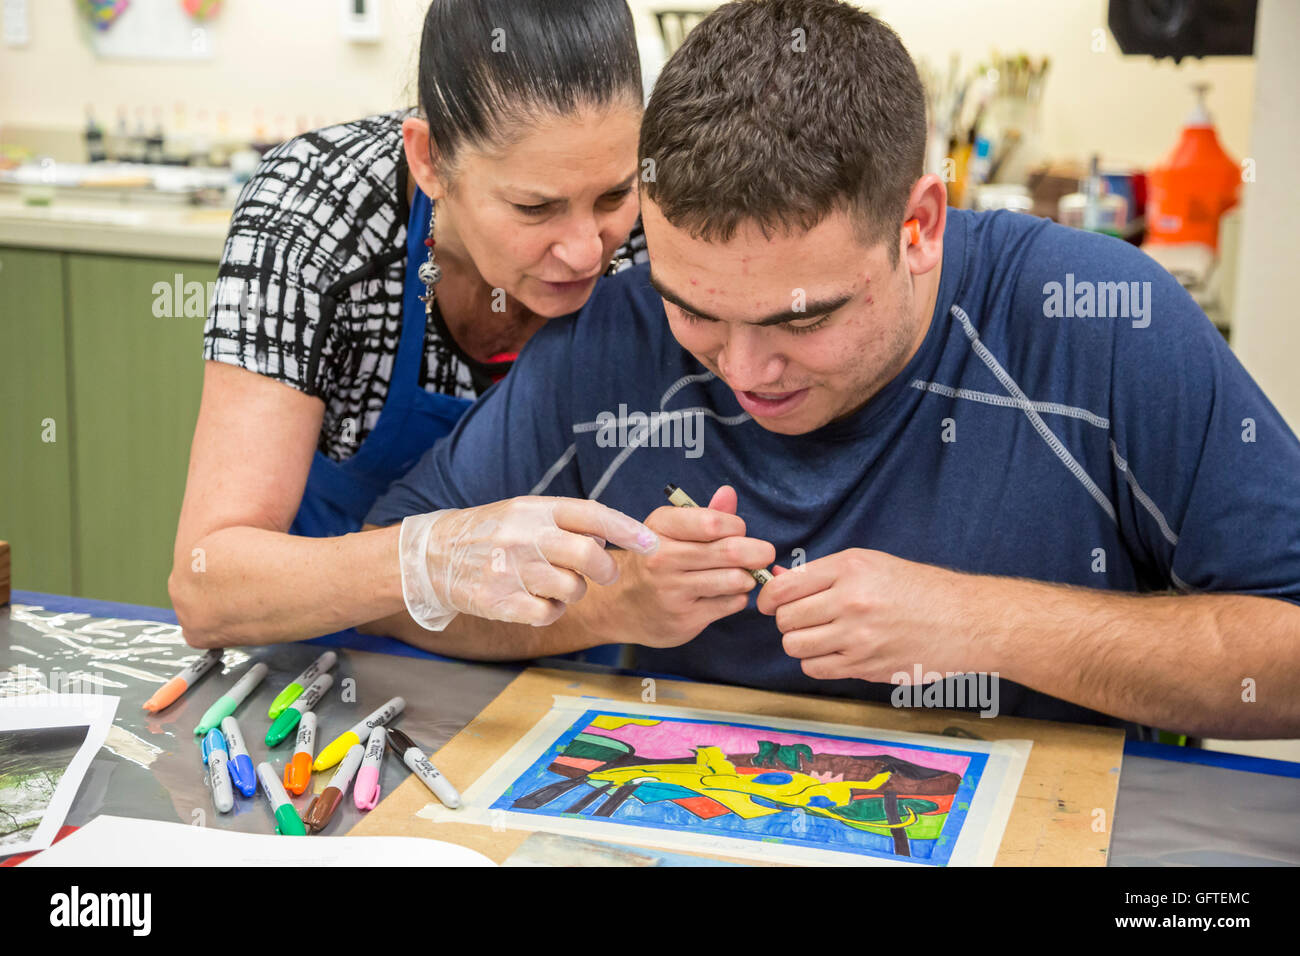 Las Vegas, Nevada - People with intellectual disabilities in the Fine Art Program at the nonprofit Opportunity Village. - Stock Image